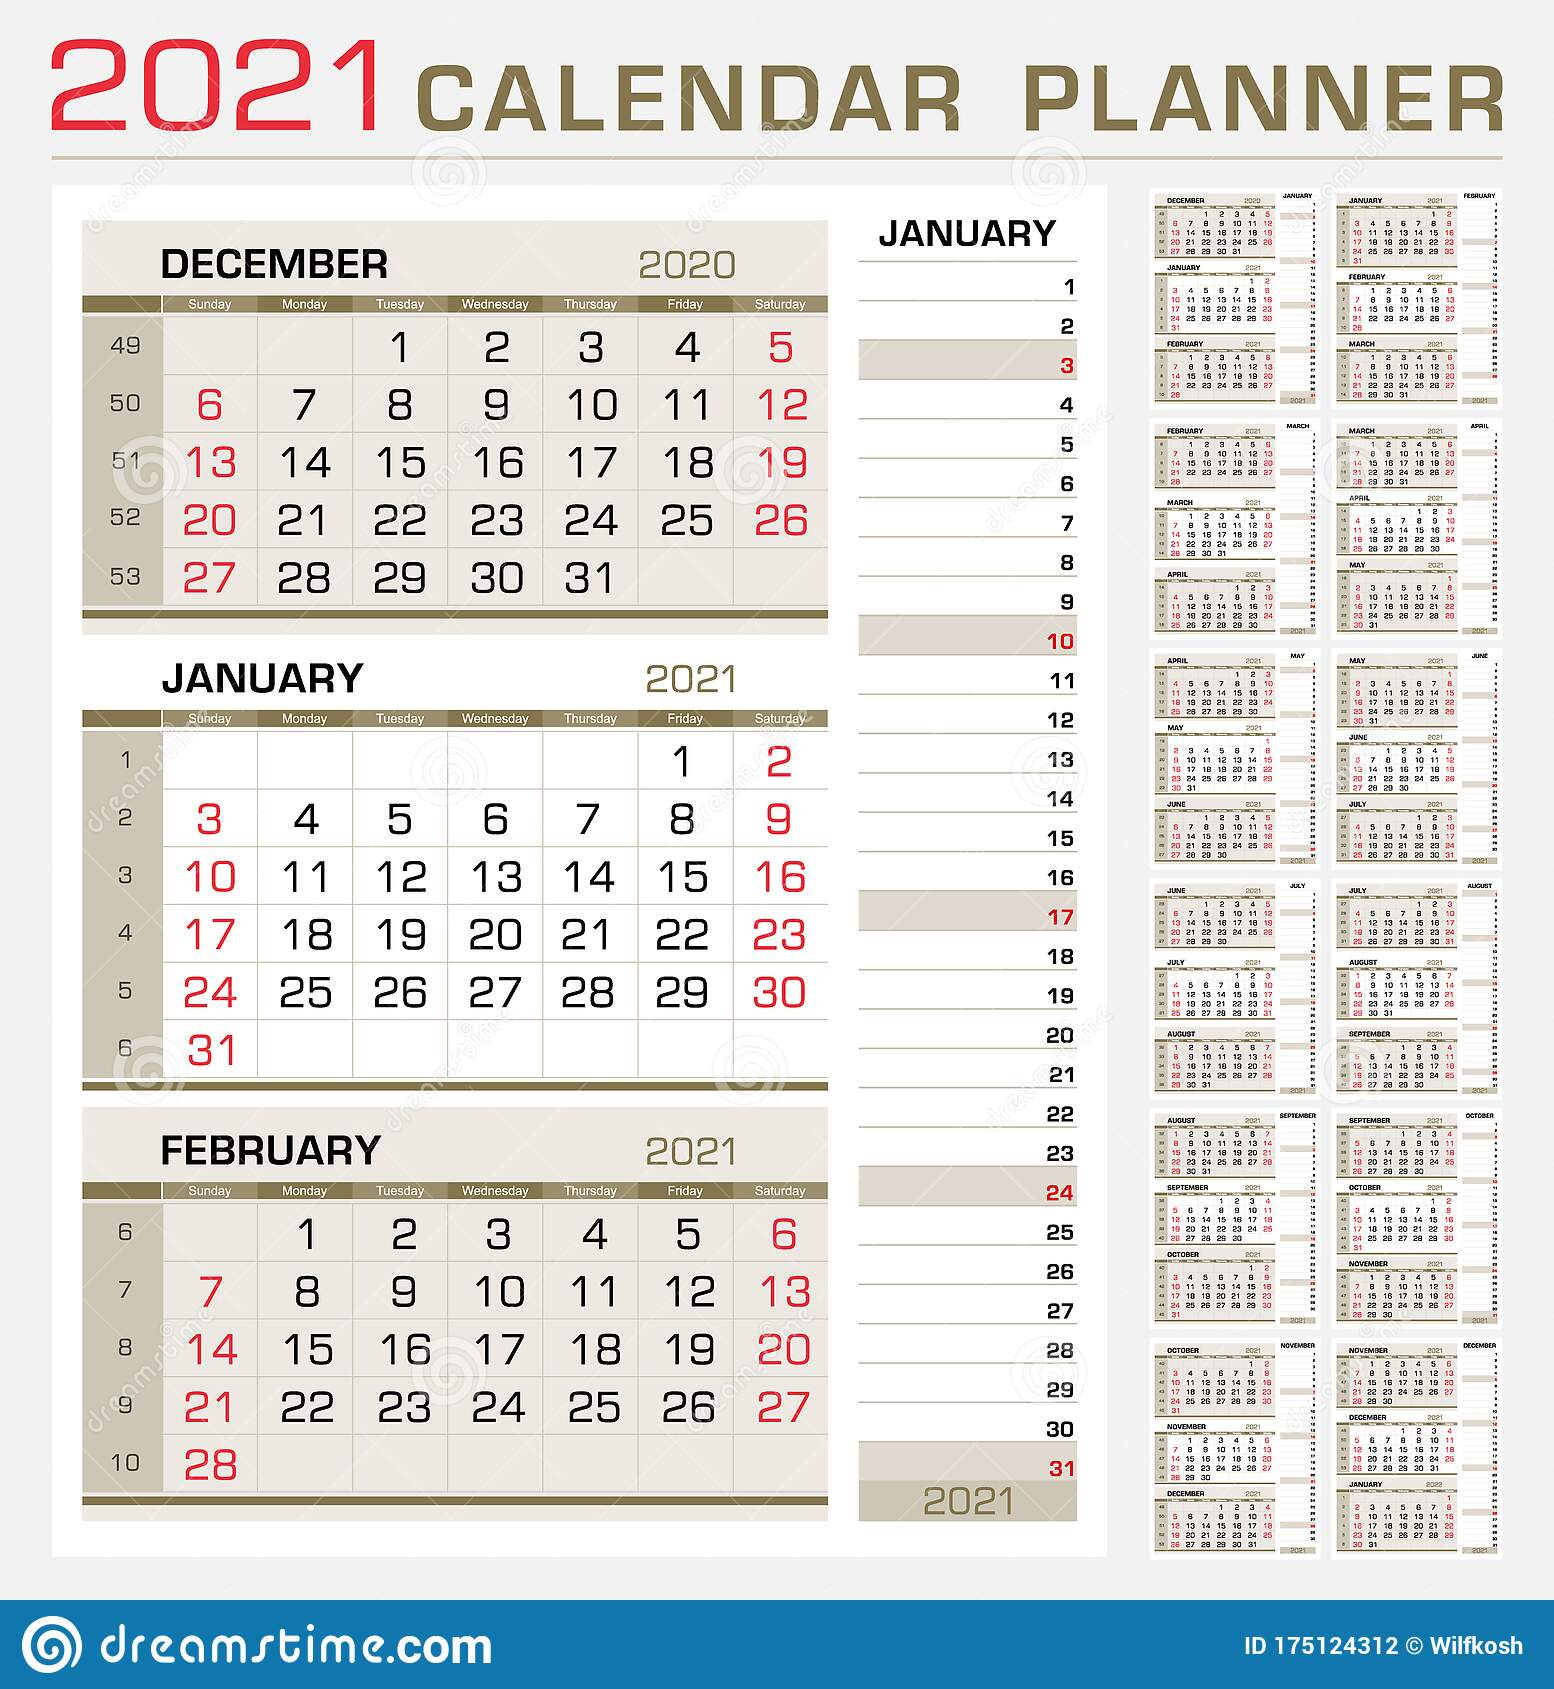 Calendar Planner 2021. Week Start From Sunday. 3 Month with Weekly Planner For 2021- 52 Weeks